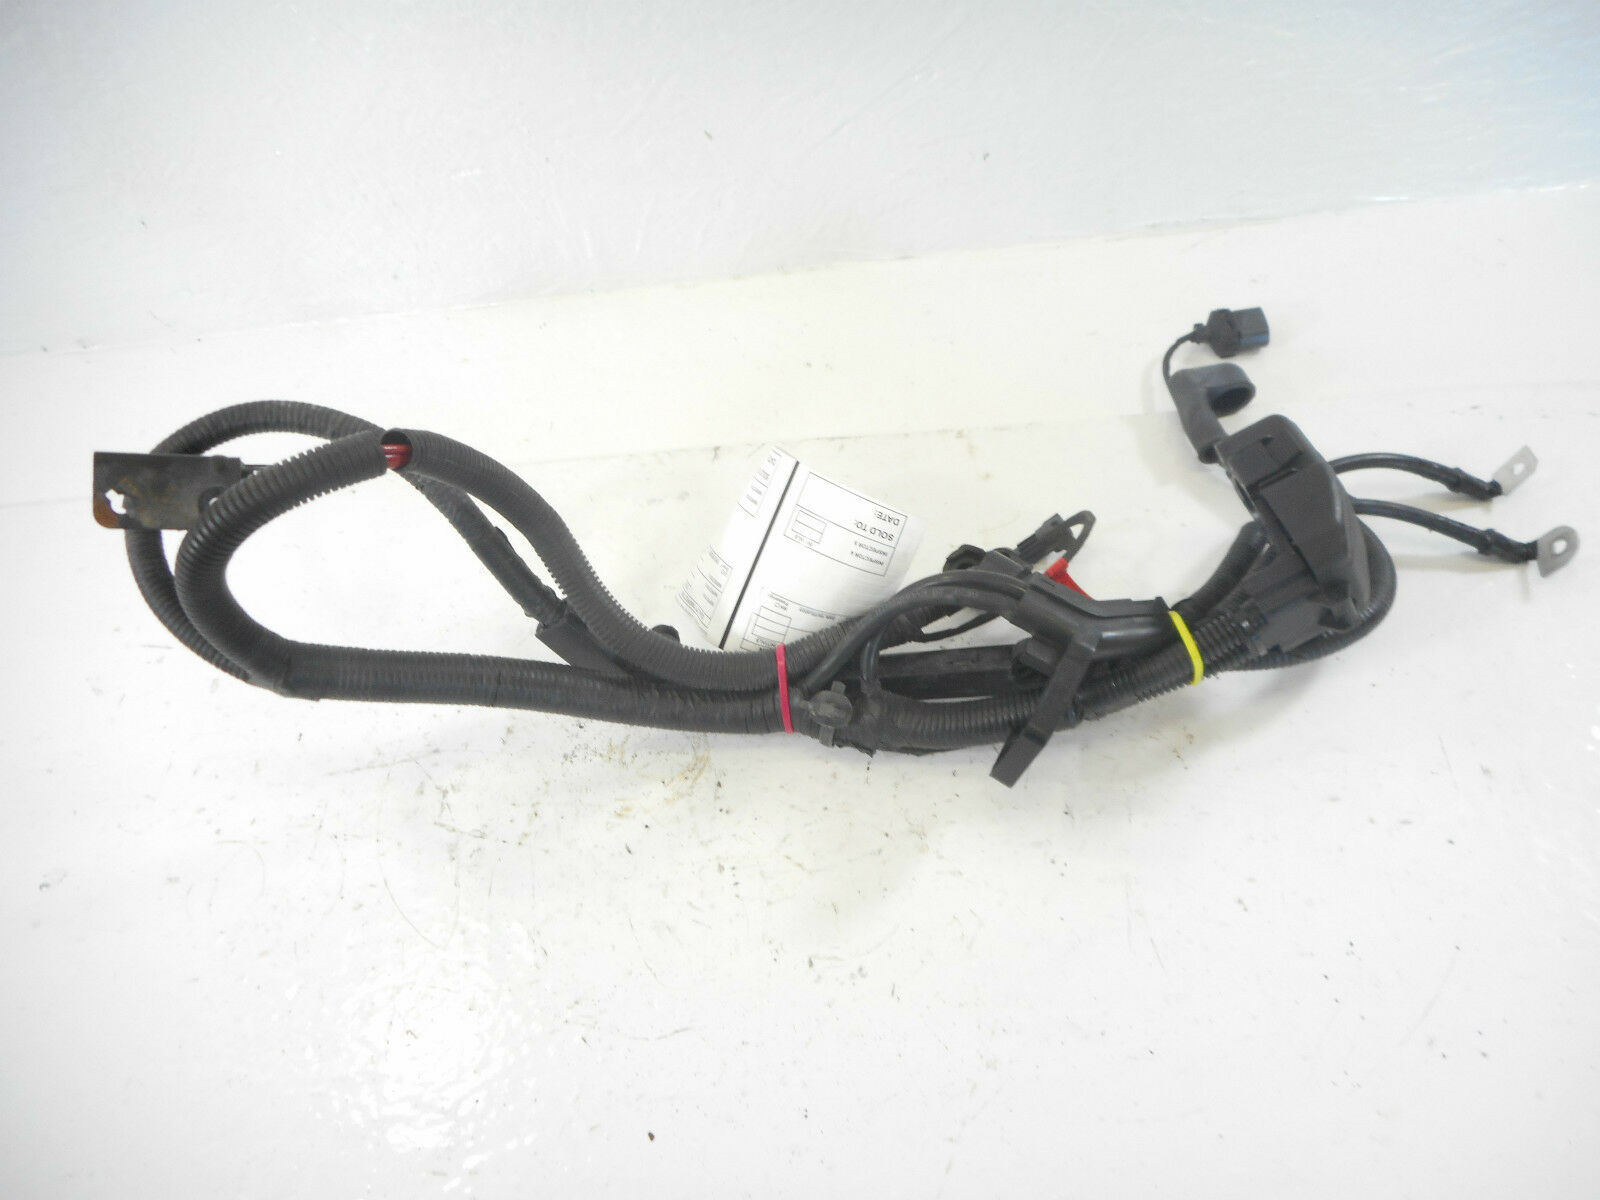 s l1600 2012 hyundai elantra hybrid 2 0l battery positive cable & wiring 2012 hyundai elantra wiring diagram at crackthecode.co